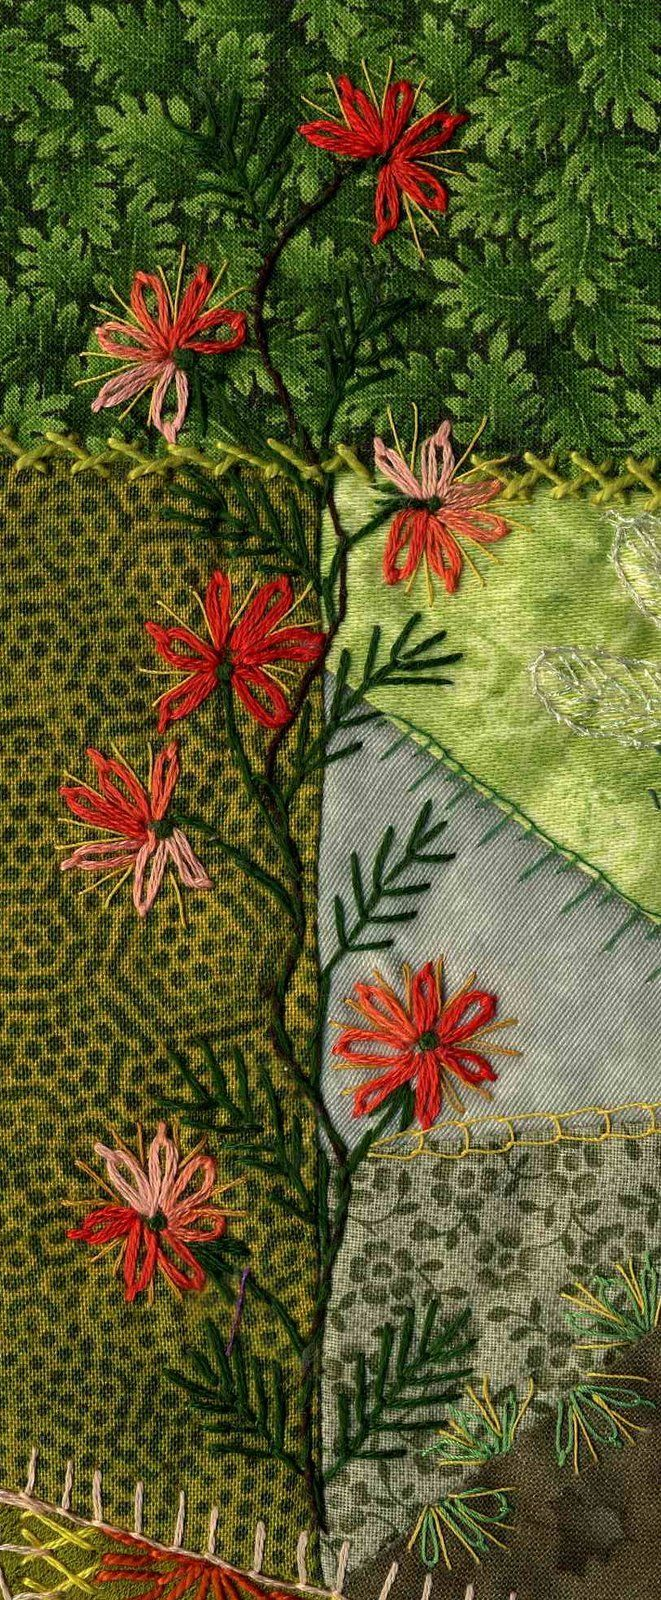 Love these trailing flowers on crazy quilting.